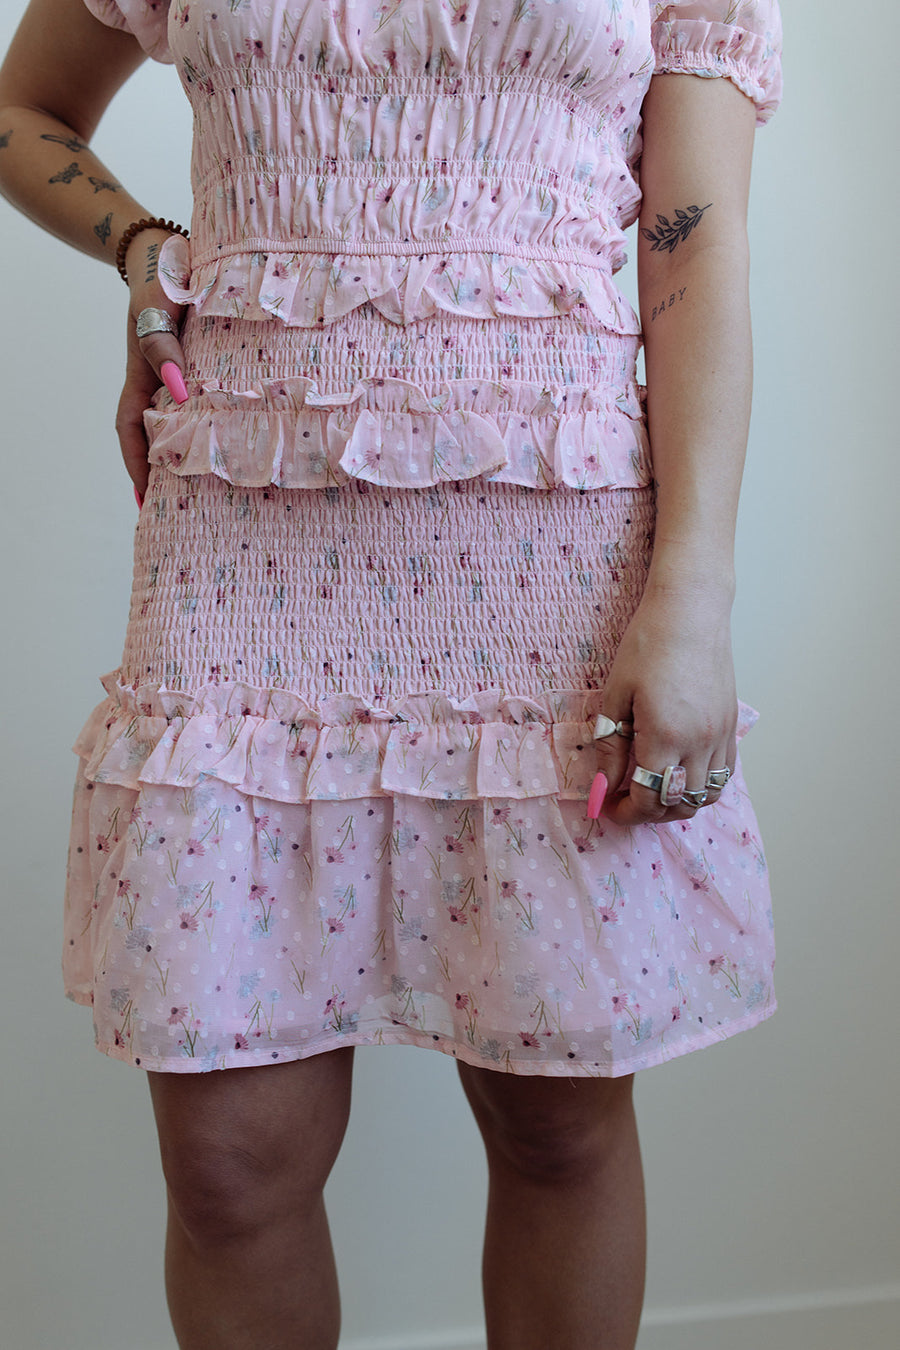 THE BABY PINK DRESS